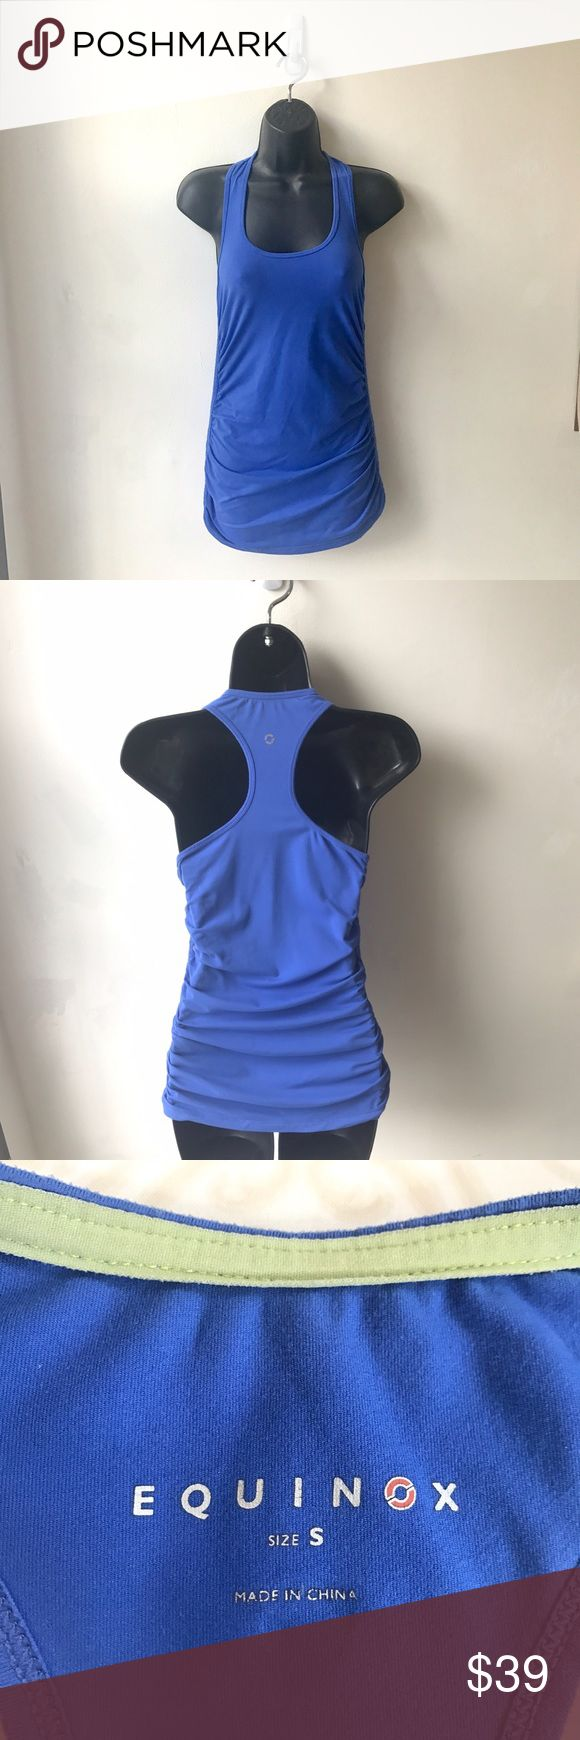 Equinox Racerback Work Out/Athletic Tank Top Blue Super comfy & cute workout/athletic racerback tank by Equinox featuring ruched sides in a gorgeous royal blue, size small. This is from Equinox gym's own clothing brand sold exclusively at specific gym location stores. Fits comfortably without being too tight/spandex like while wearing-could fit XS-M. Material:91% nylon, 5% spandex.Durable stretch with a lightweight cotton feel material - perfect to add to your gym outfit rotation ❤️ have…